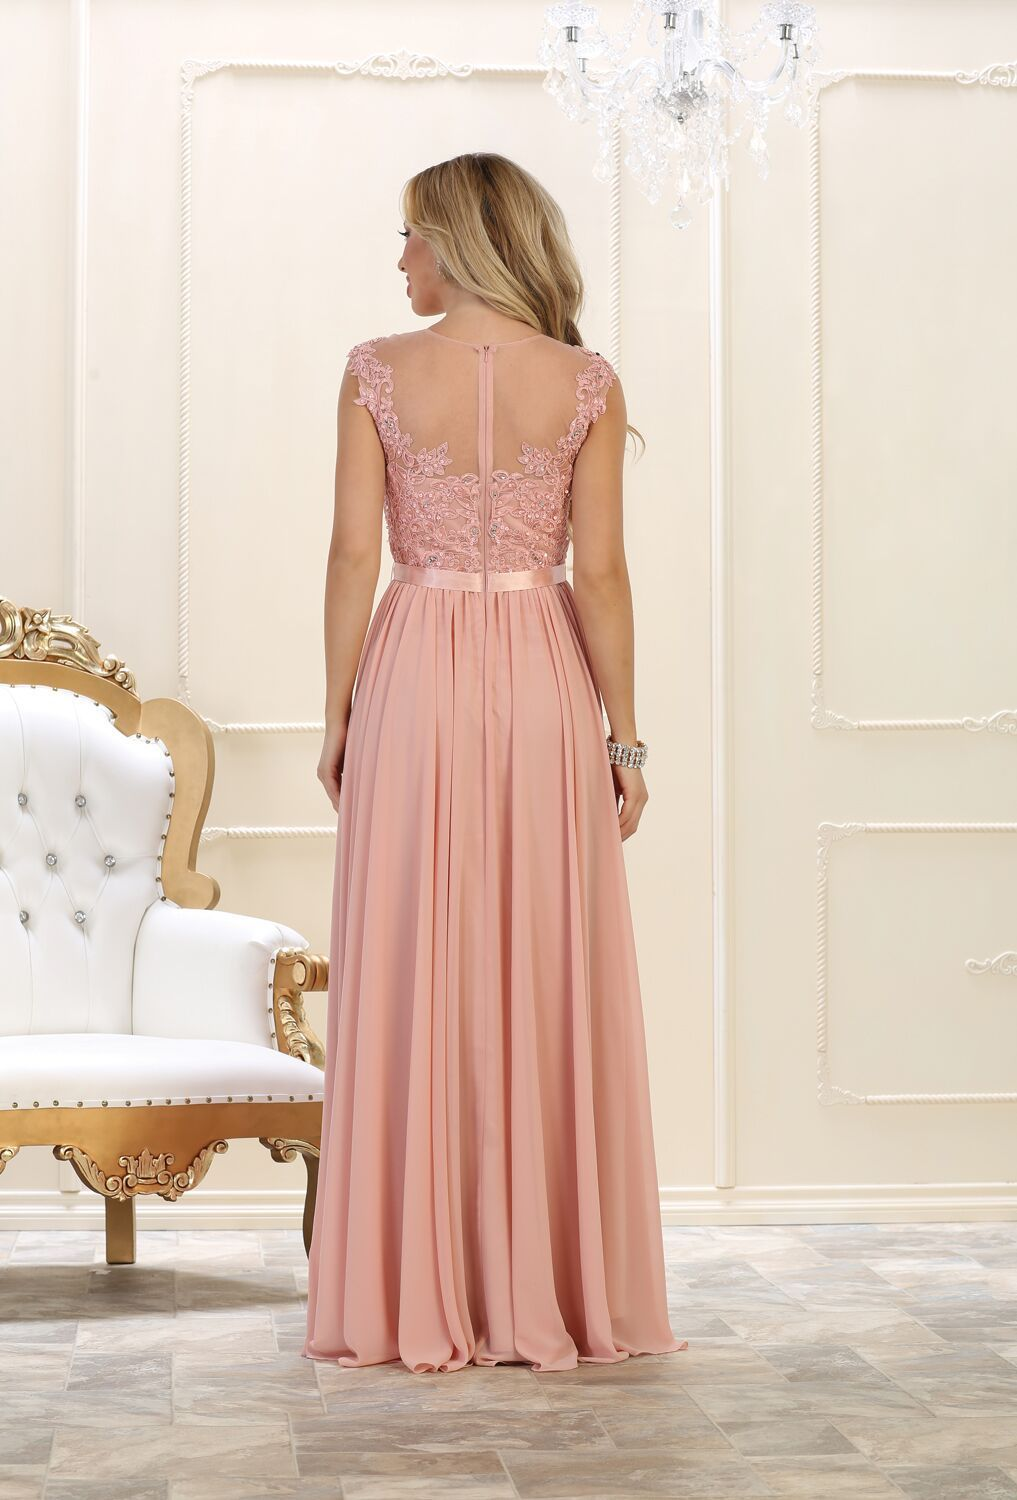 Formal long dress plus size wedding gown in products